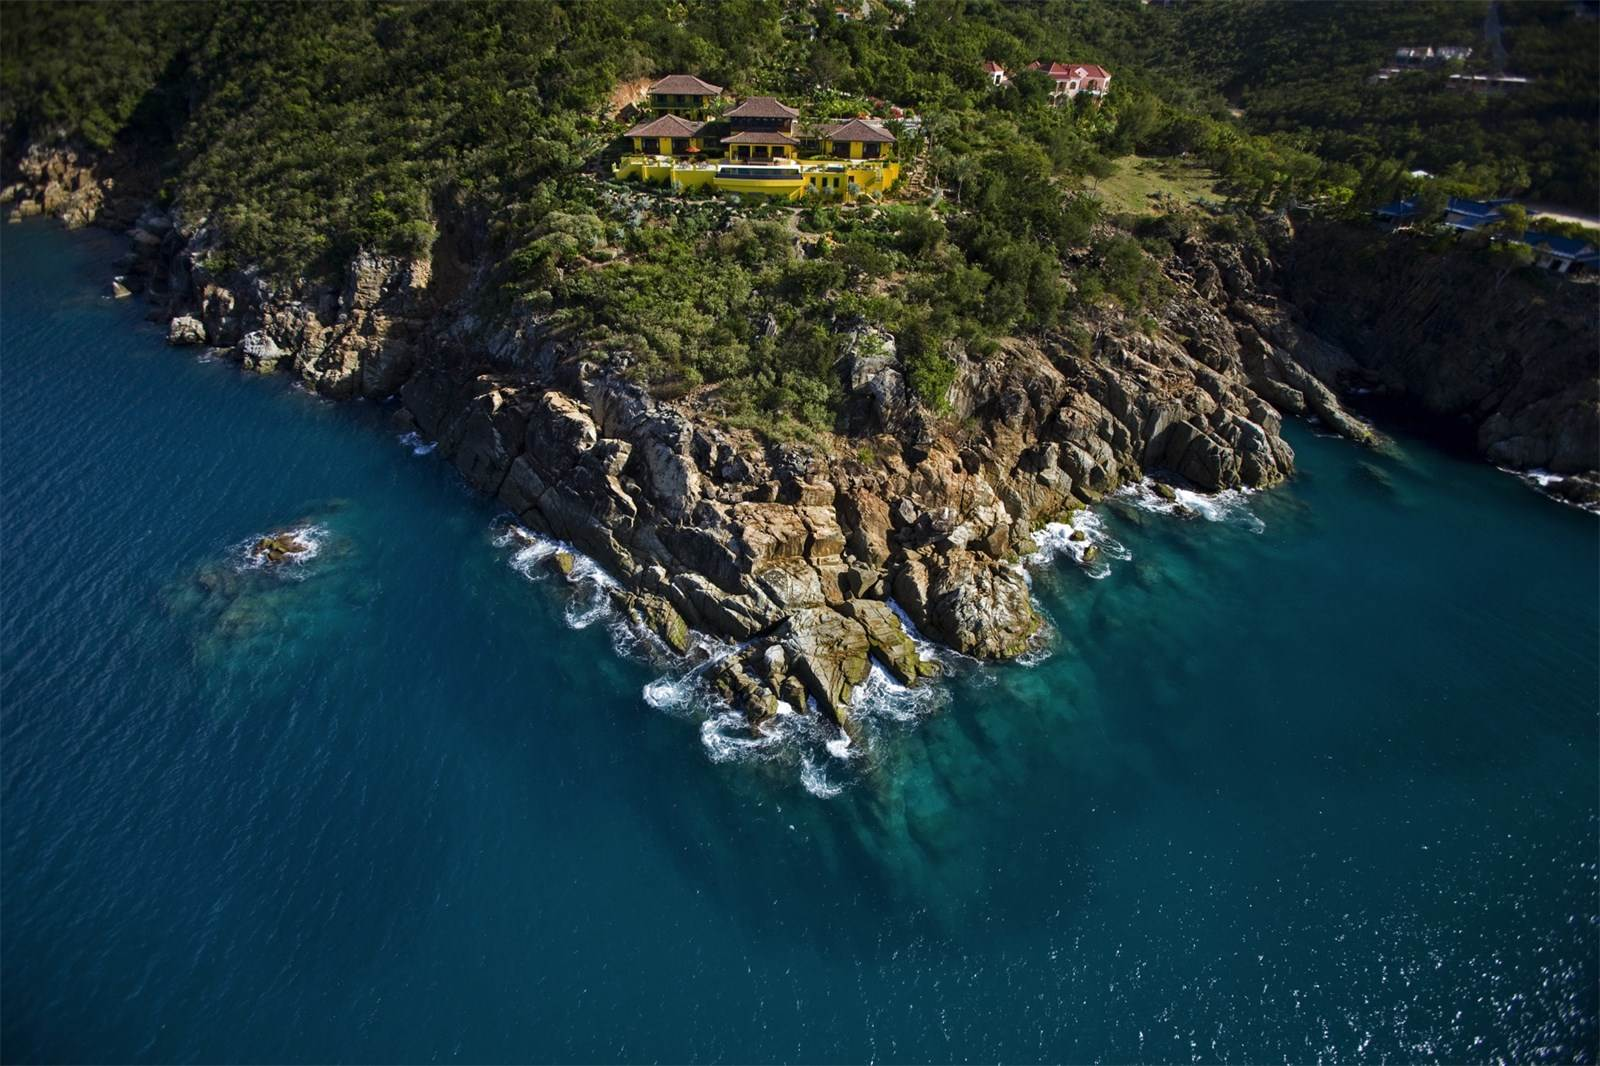 Own a Slice of Paradise with This Stunning $6 Million Island Caribbean Estate